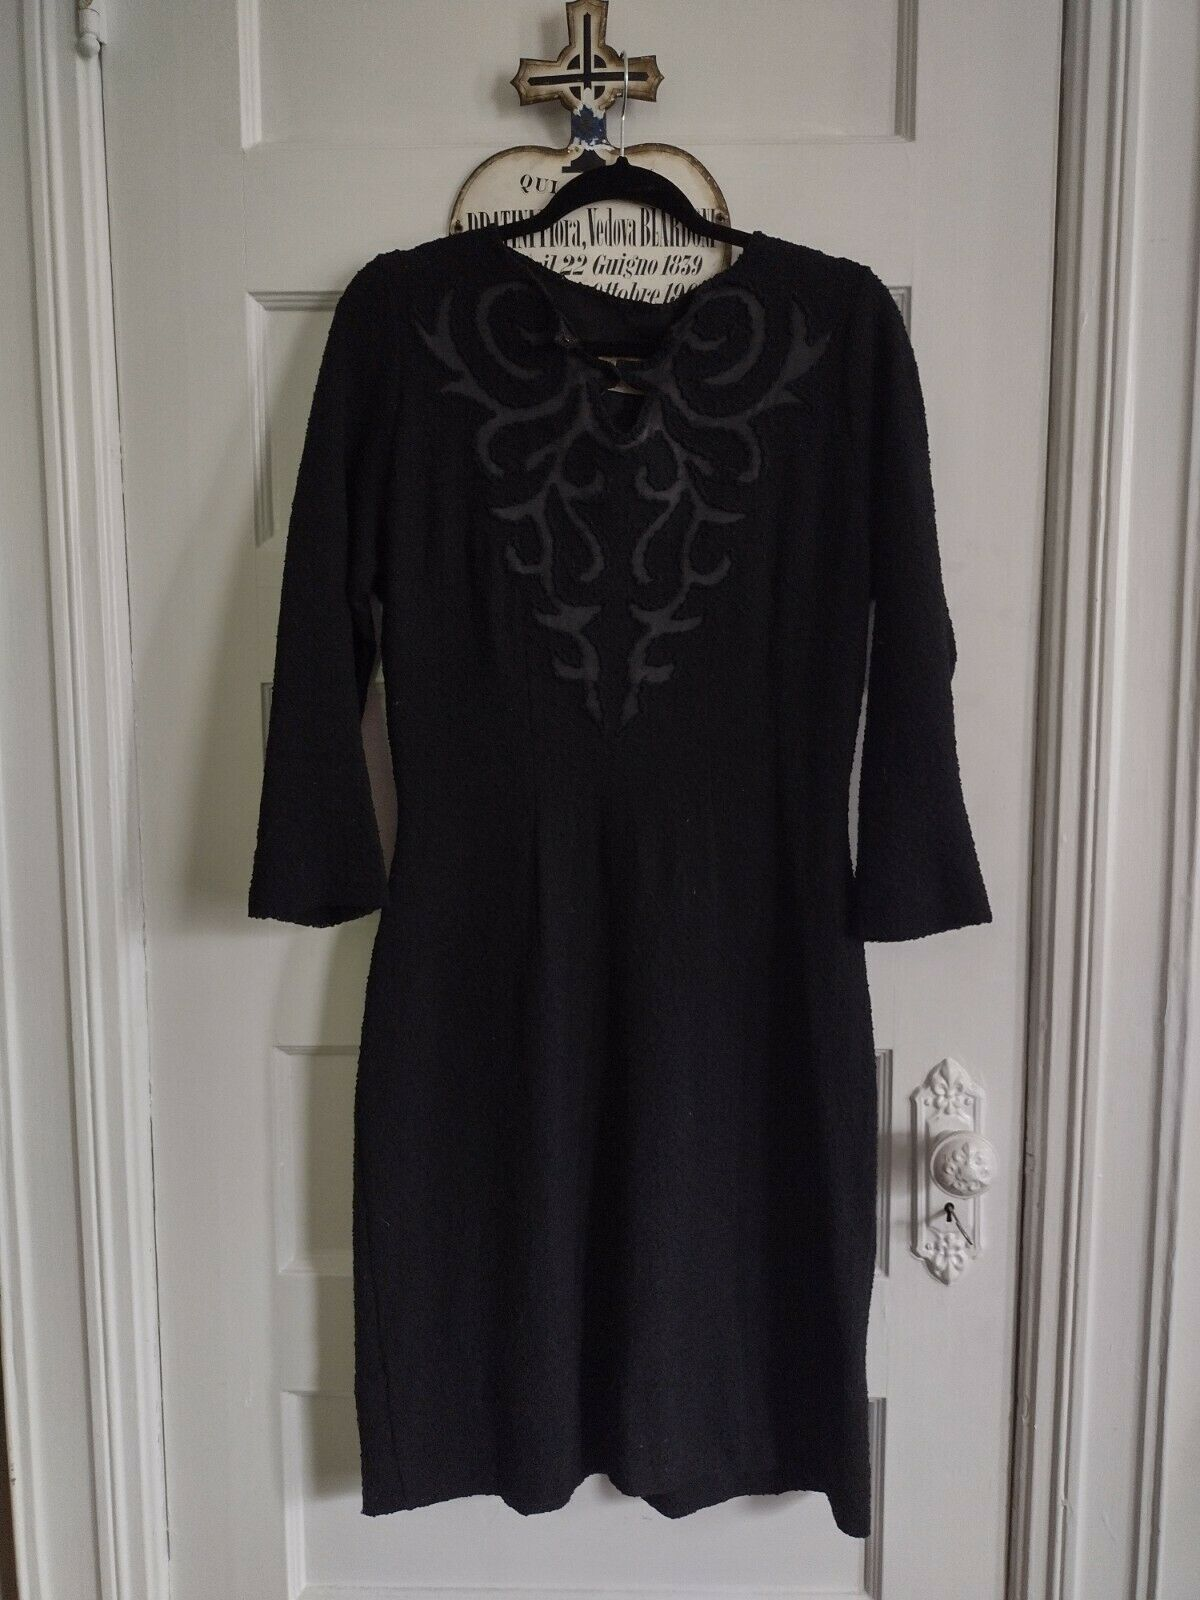 1940s Black Knit Dress With Satin Detail In Volup… - image 2